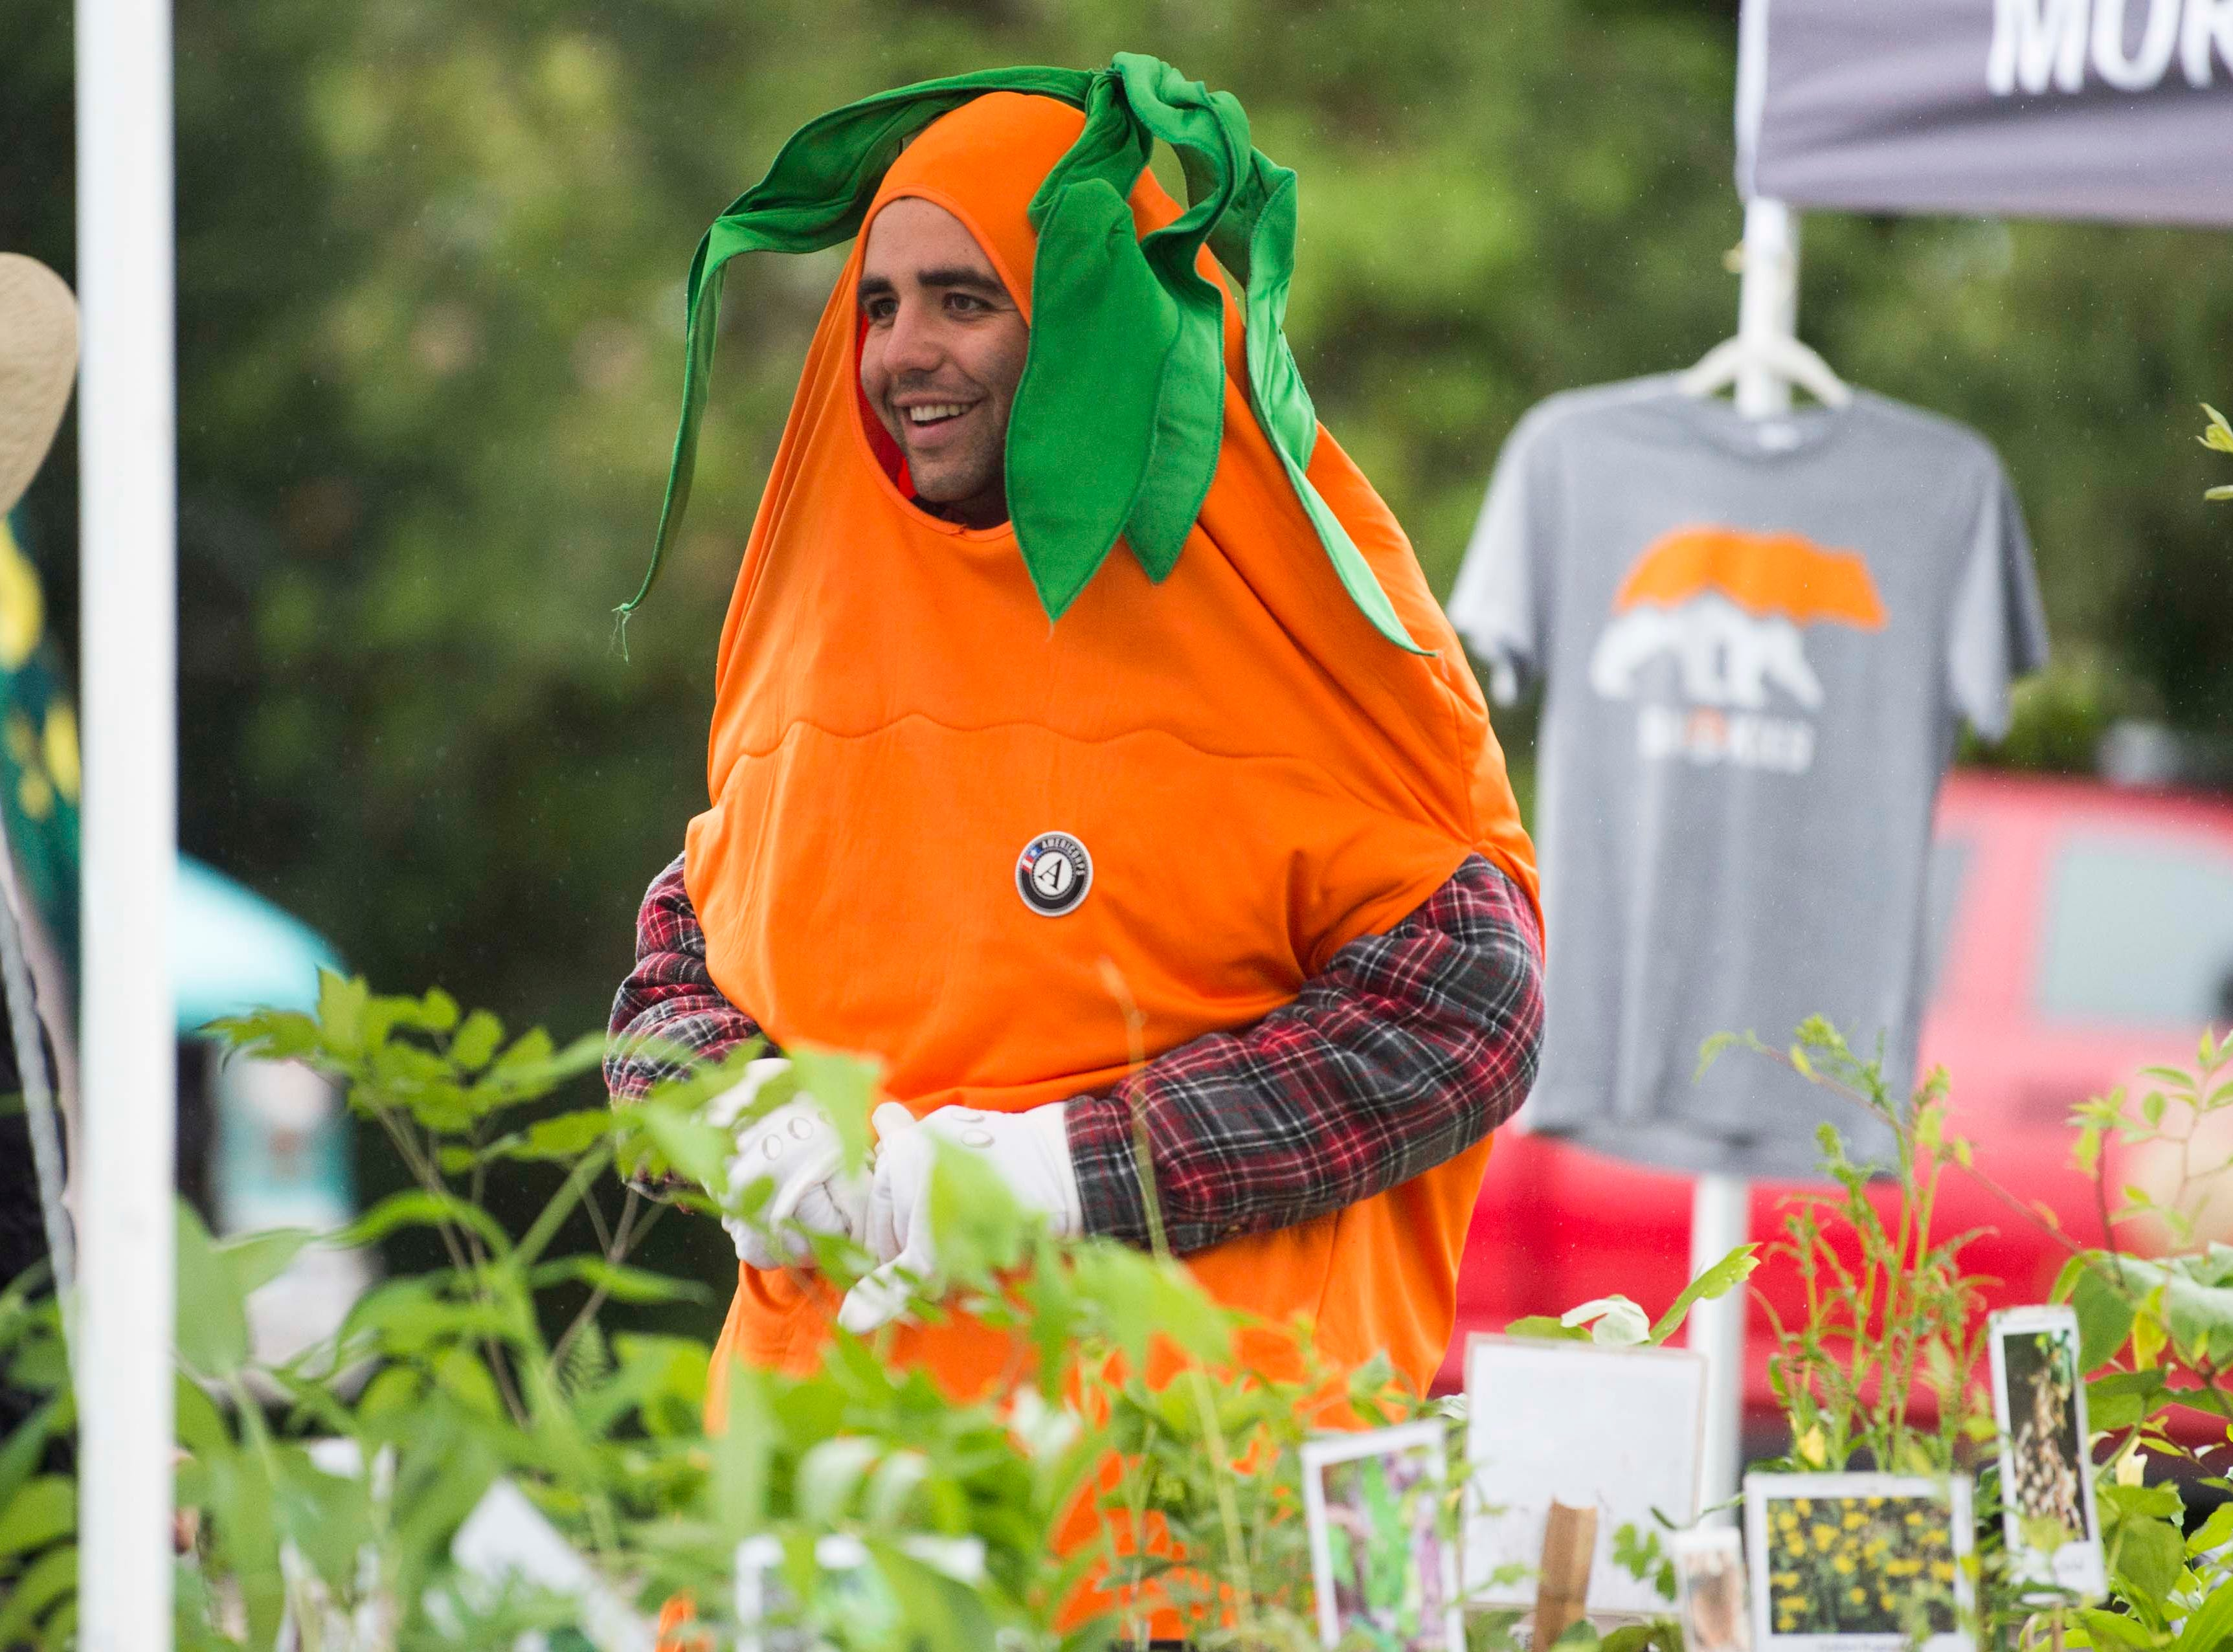 Dressed as a carrot, Justin Beach, of Knoxville, learns about the Native Plant Rescue Squad at Earthfest 2019 at the Knoxville Botanical Gardens in East Knoxville, Saturday, April 20, 2019.